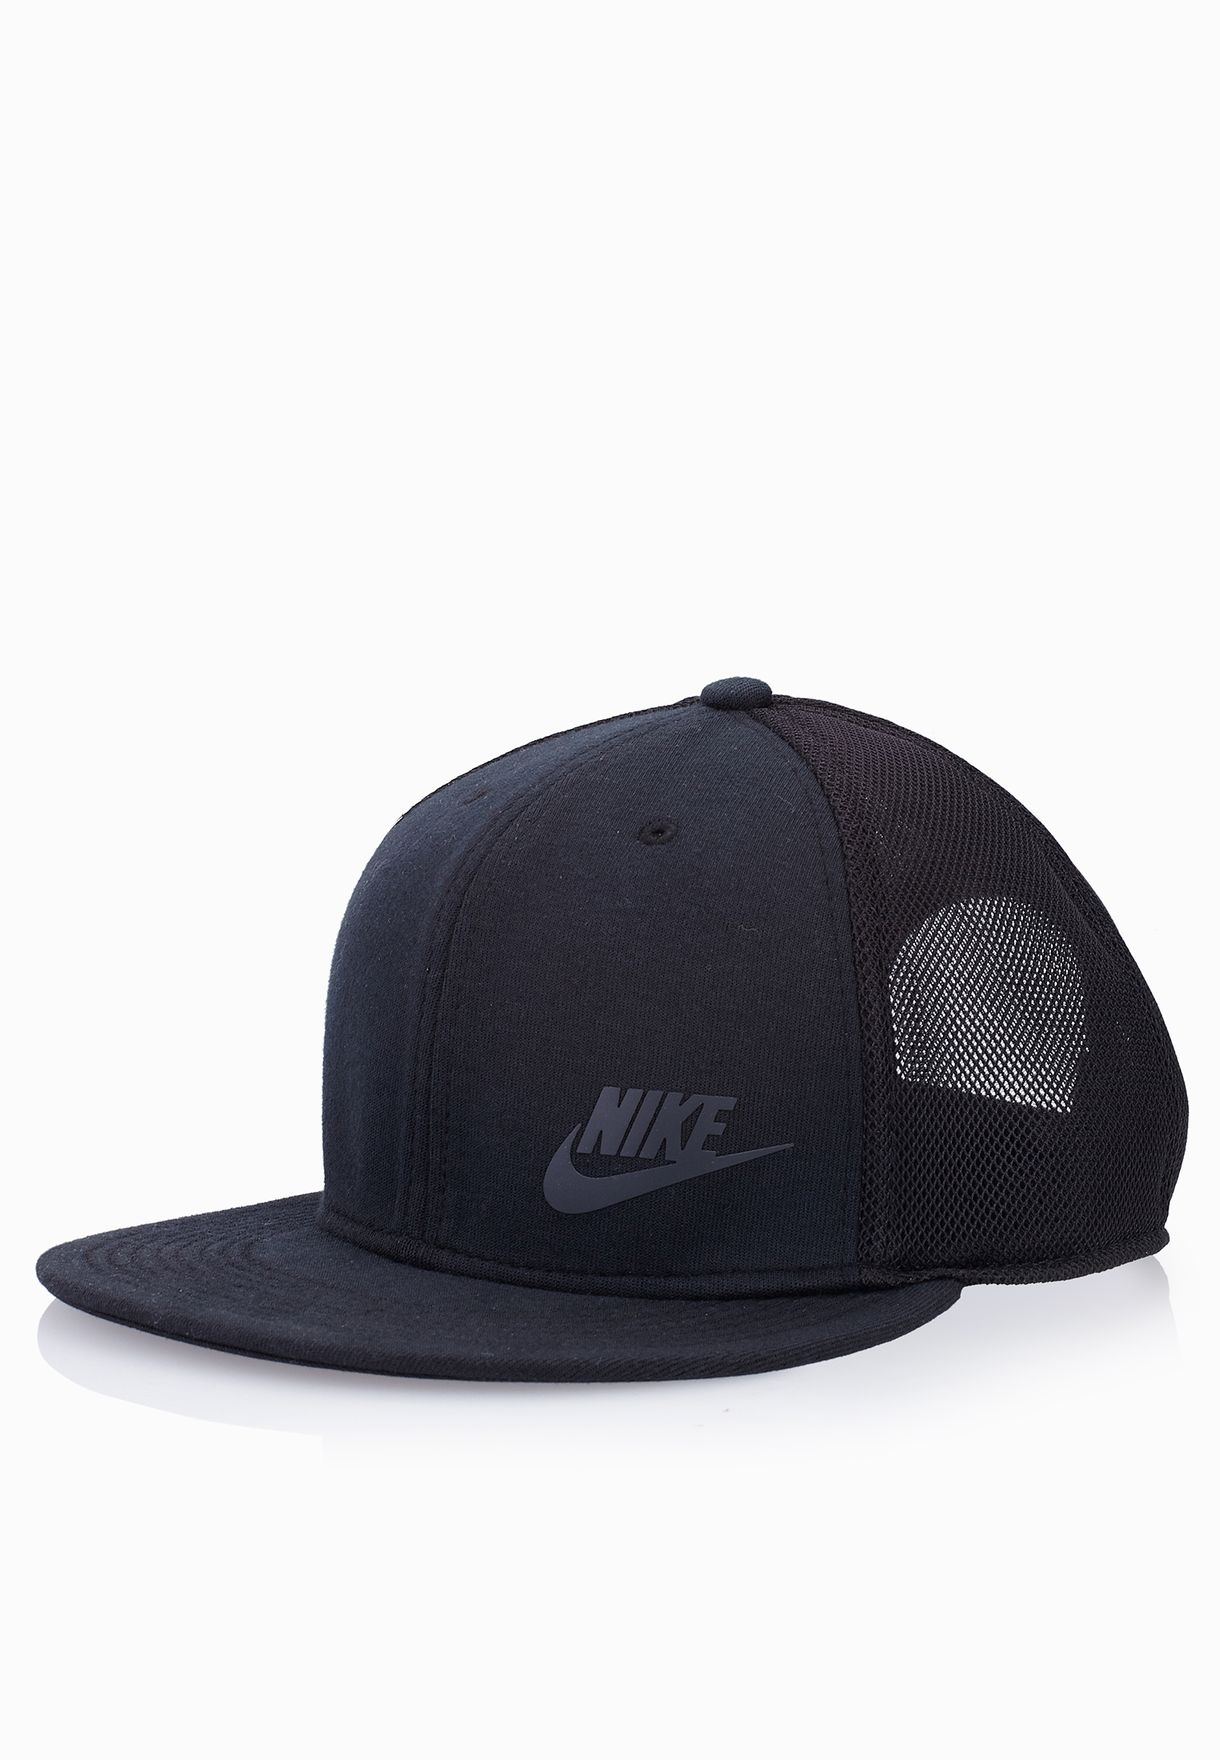 f569662d ... usa shop nike black futura true snapback cap 739418 010 for men in oman  ni727ac98xnh 0ad7c